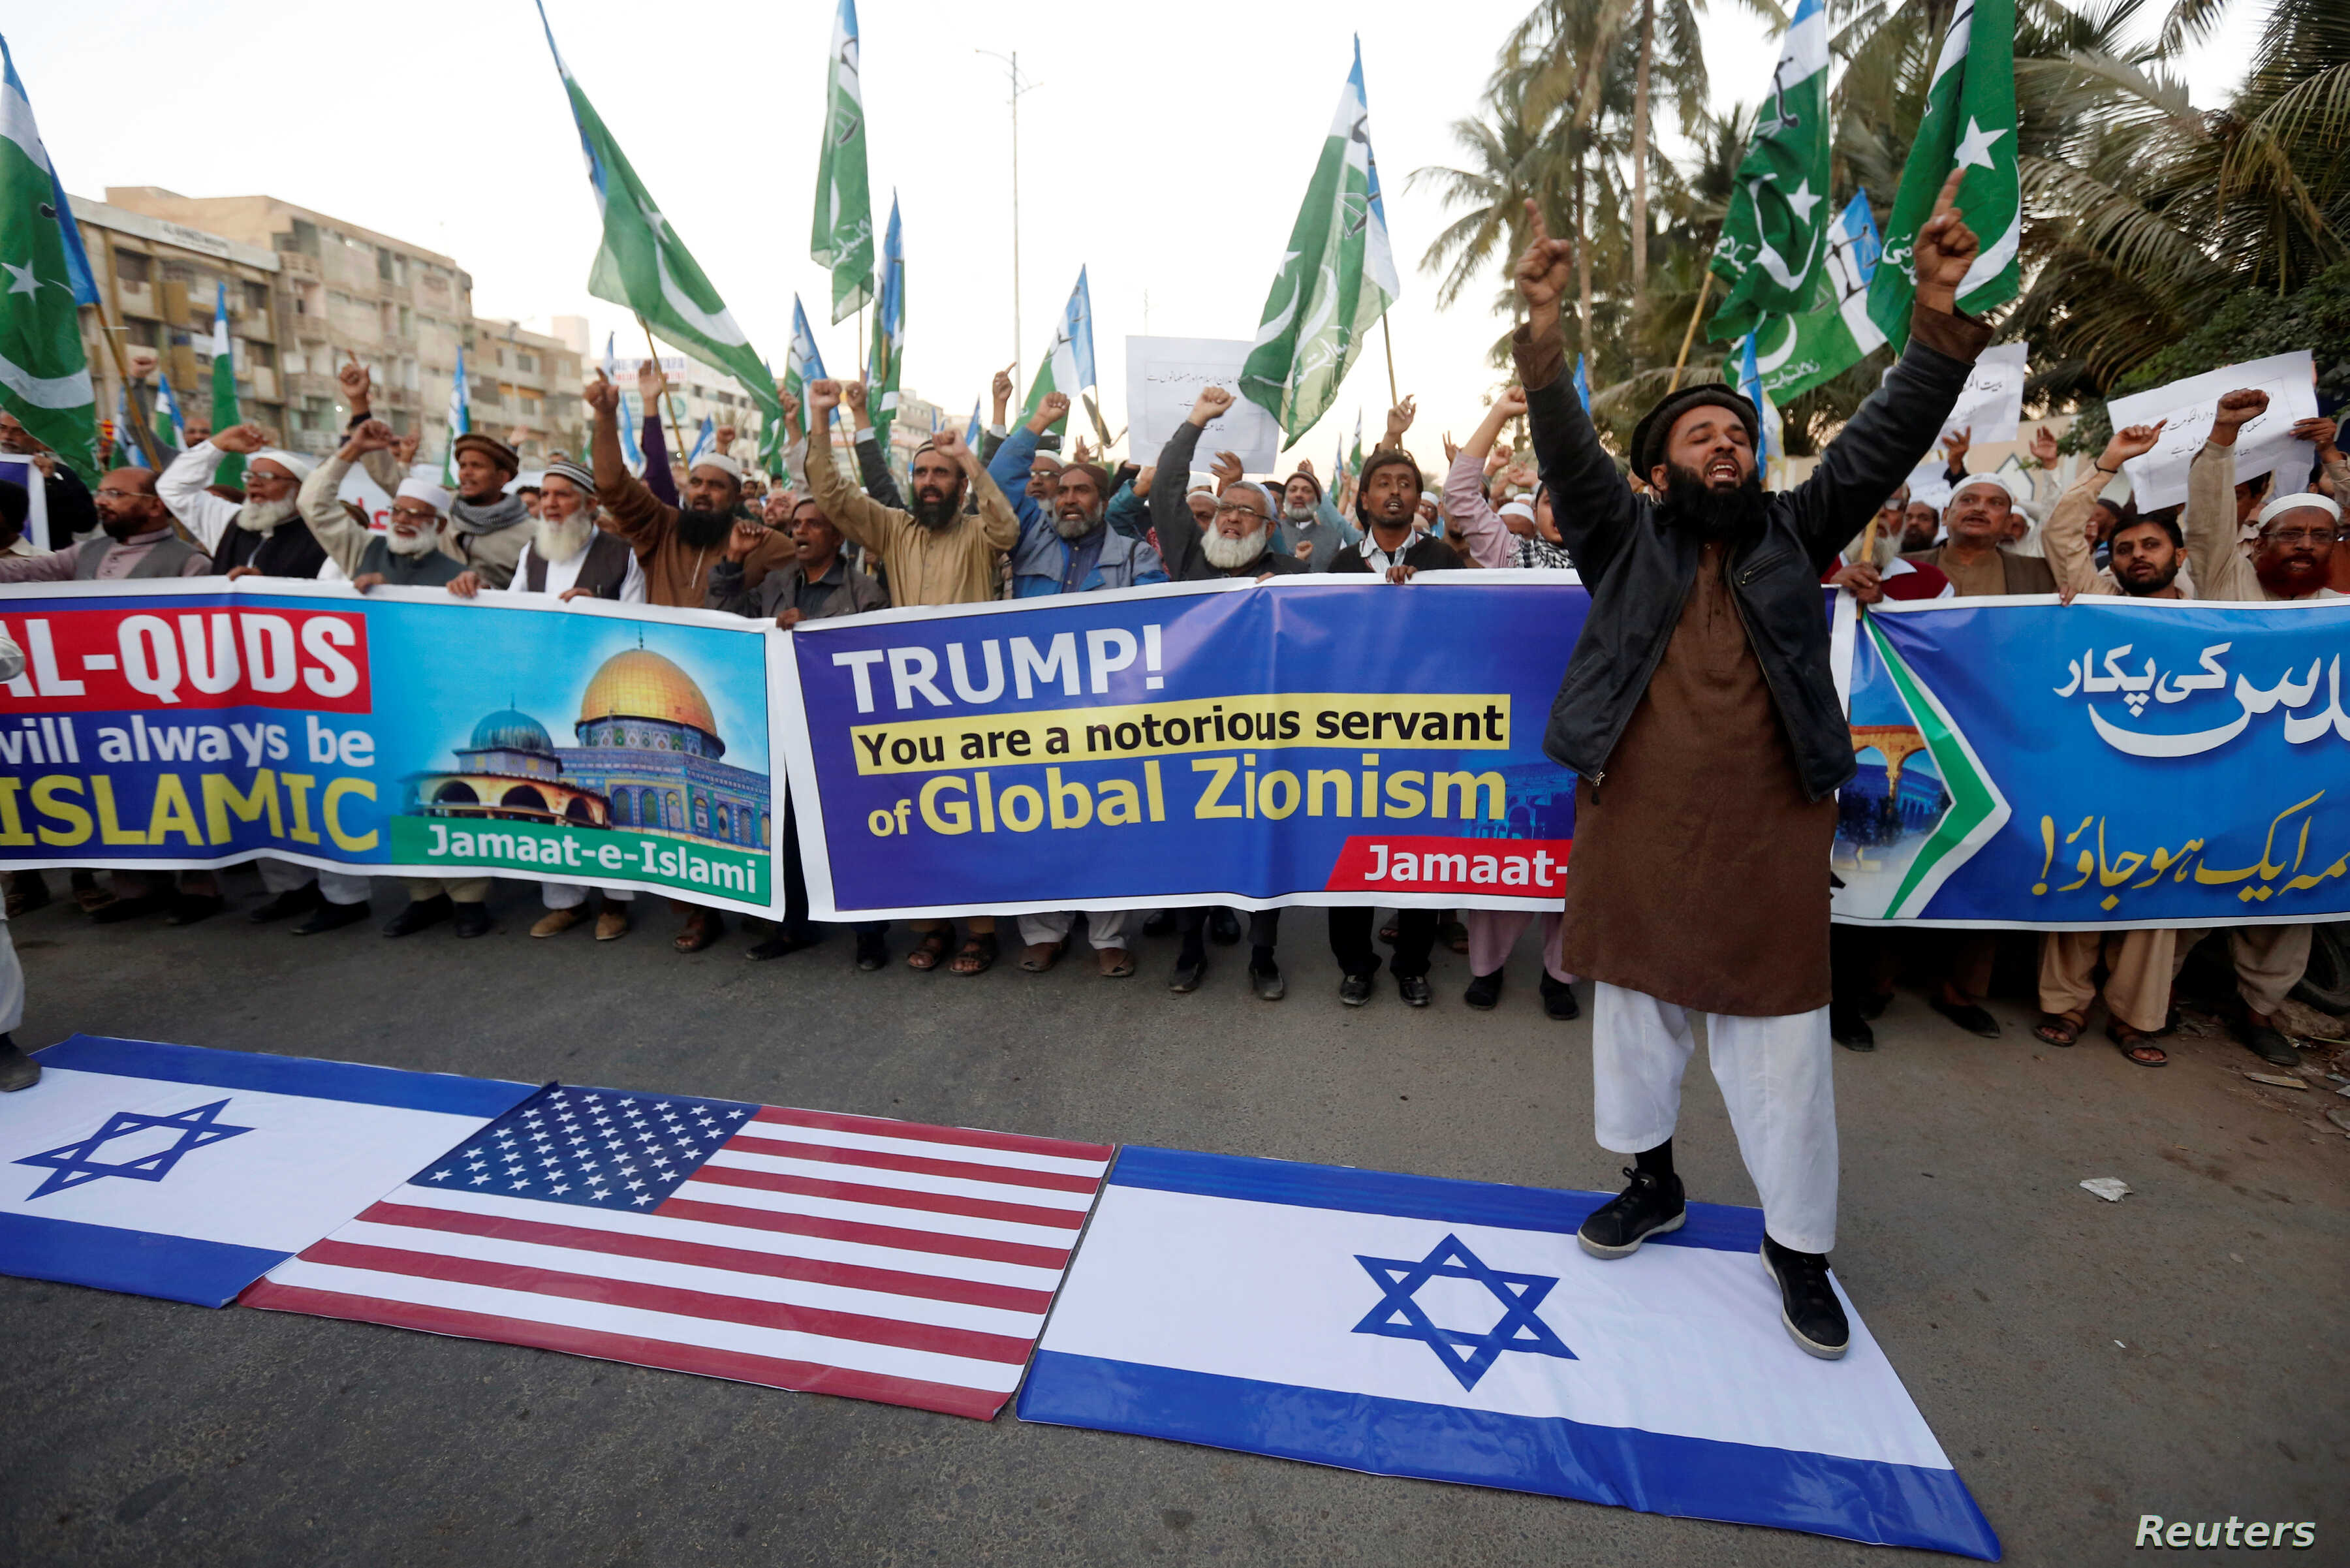 A supporter of religious and political party Jamaat-e-Islami (JI) chants slogans with others as he stands on Israeli flag during a protest against U.S. President Donald Trump's decision to recognize Jerusalem as the capital of Israel, in Karachi, Pak...